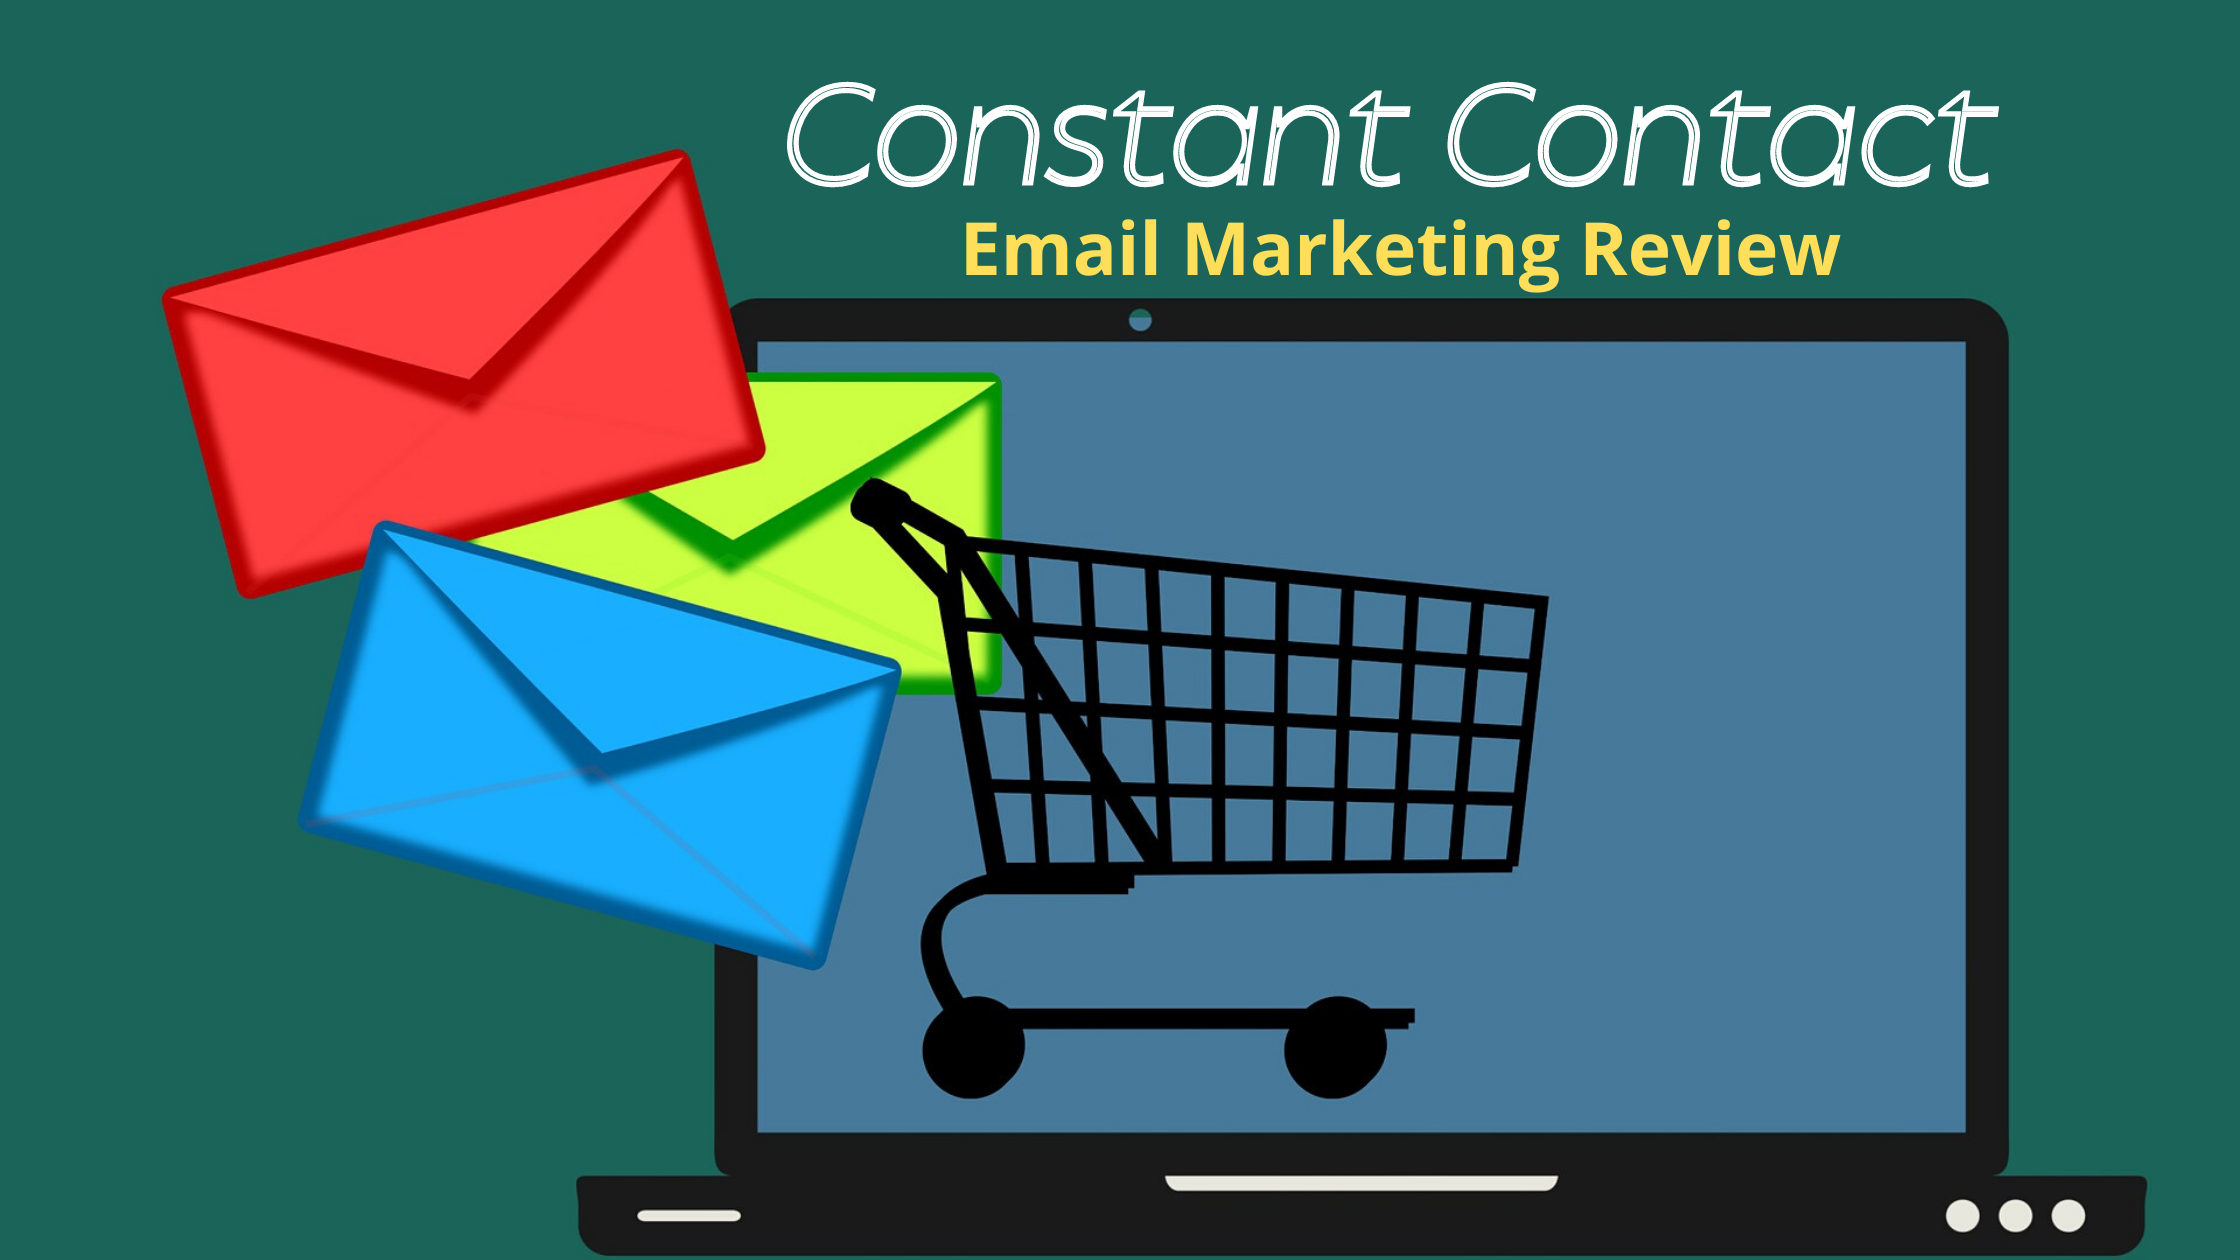 What is Constant Contact email marketing